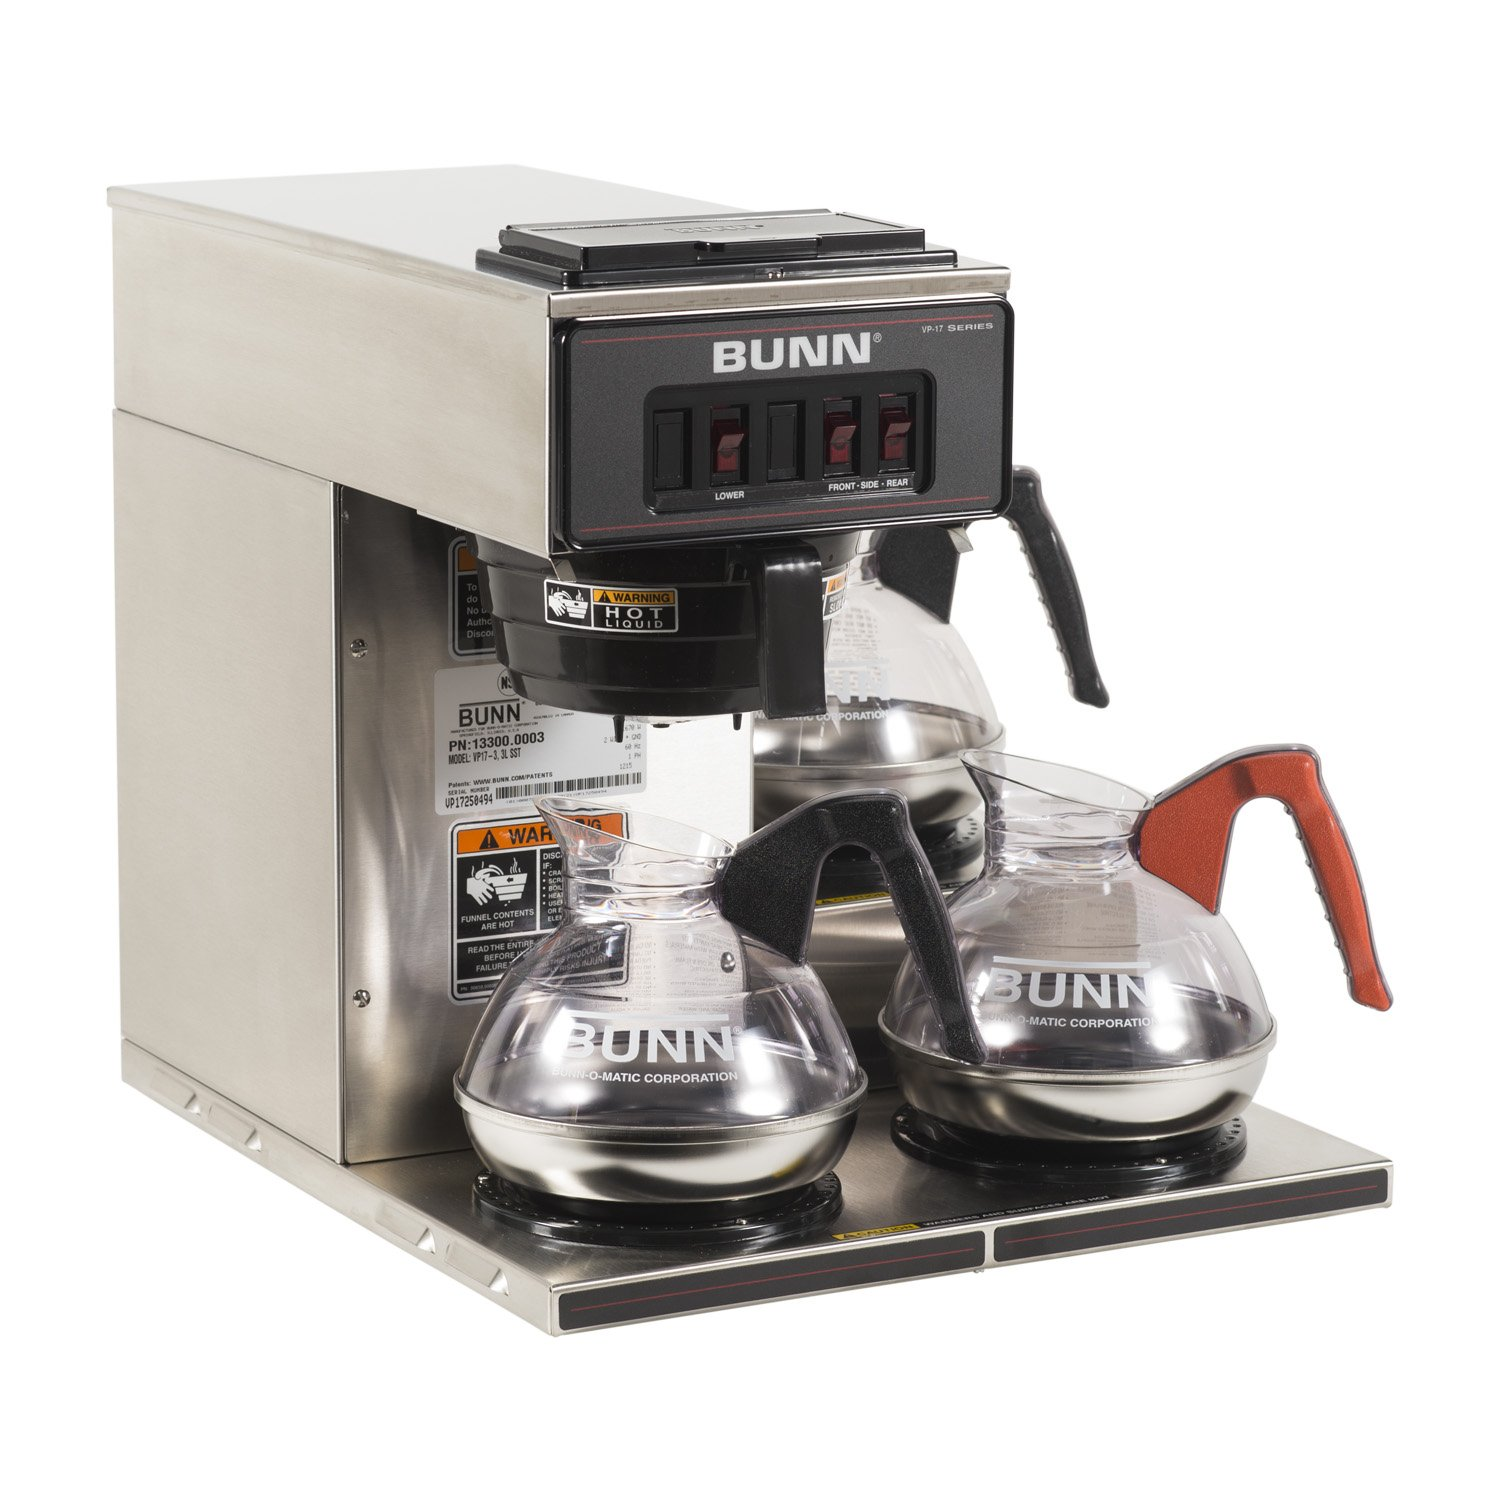 Best Coffee Maker Affordable : Restaurant Coffee Maker BUNN Commercial Best Machine Cheap w Three Lower Warmers eBay